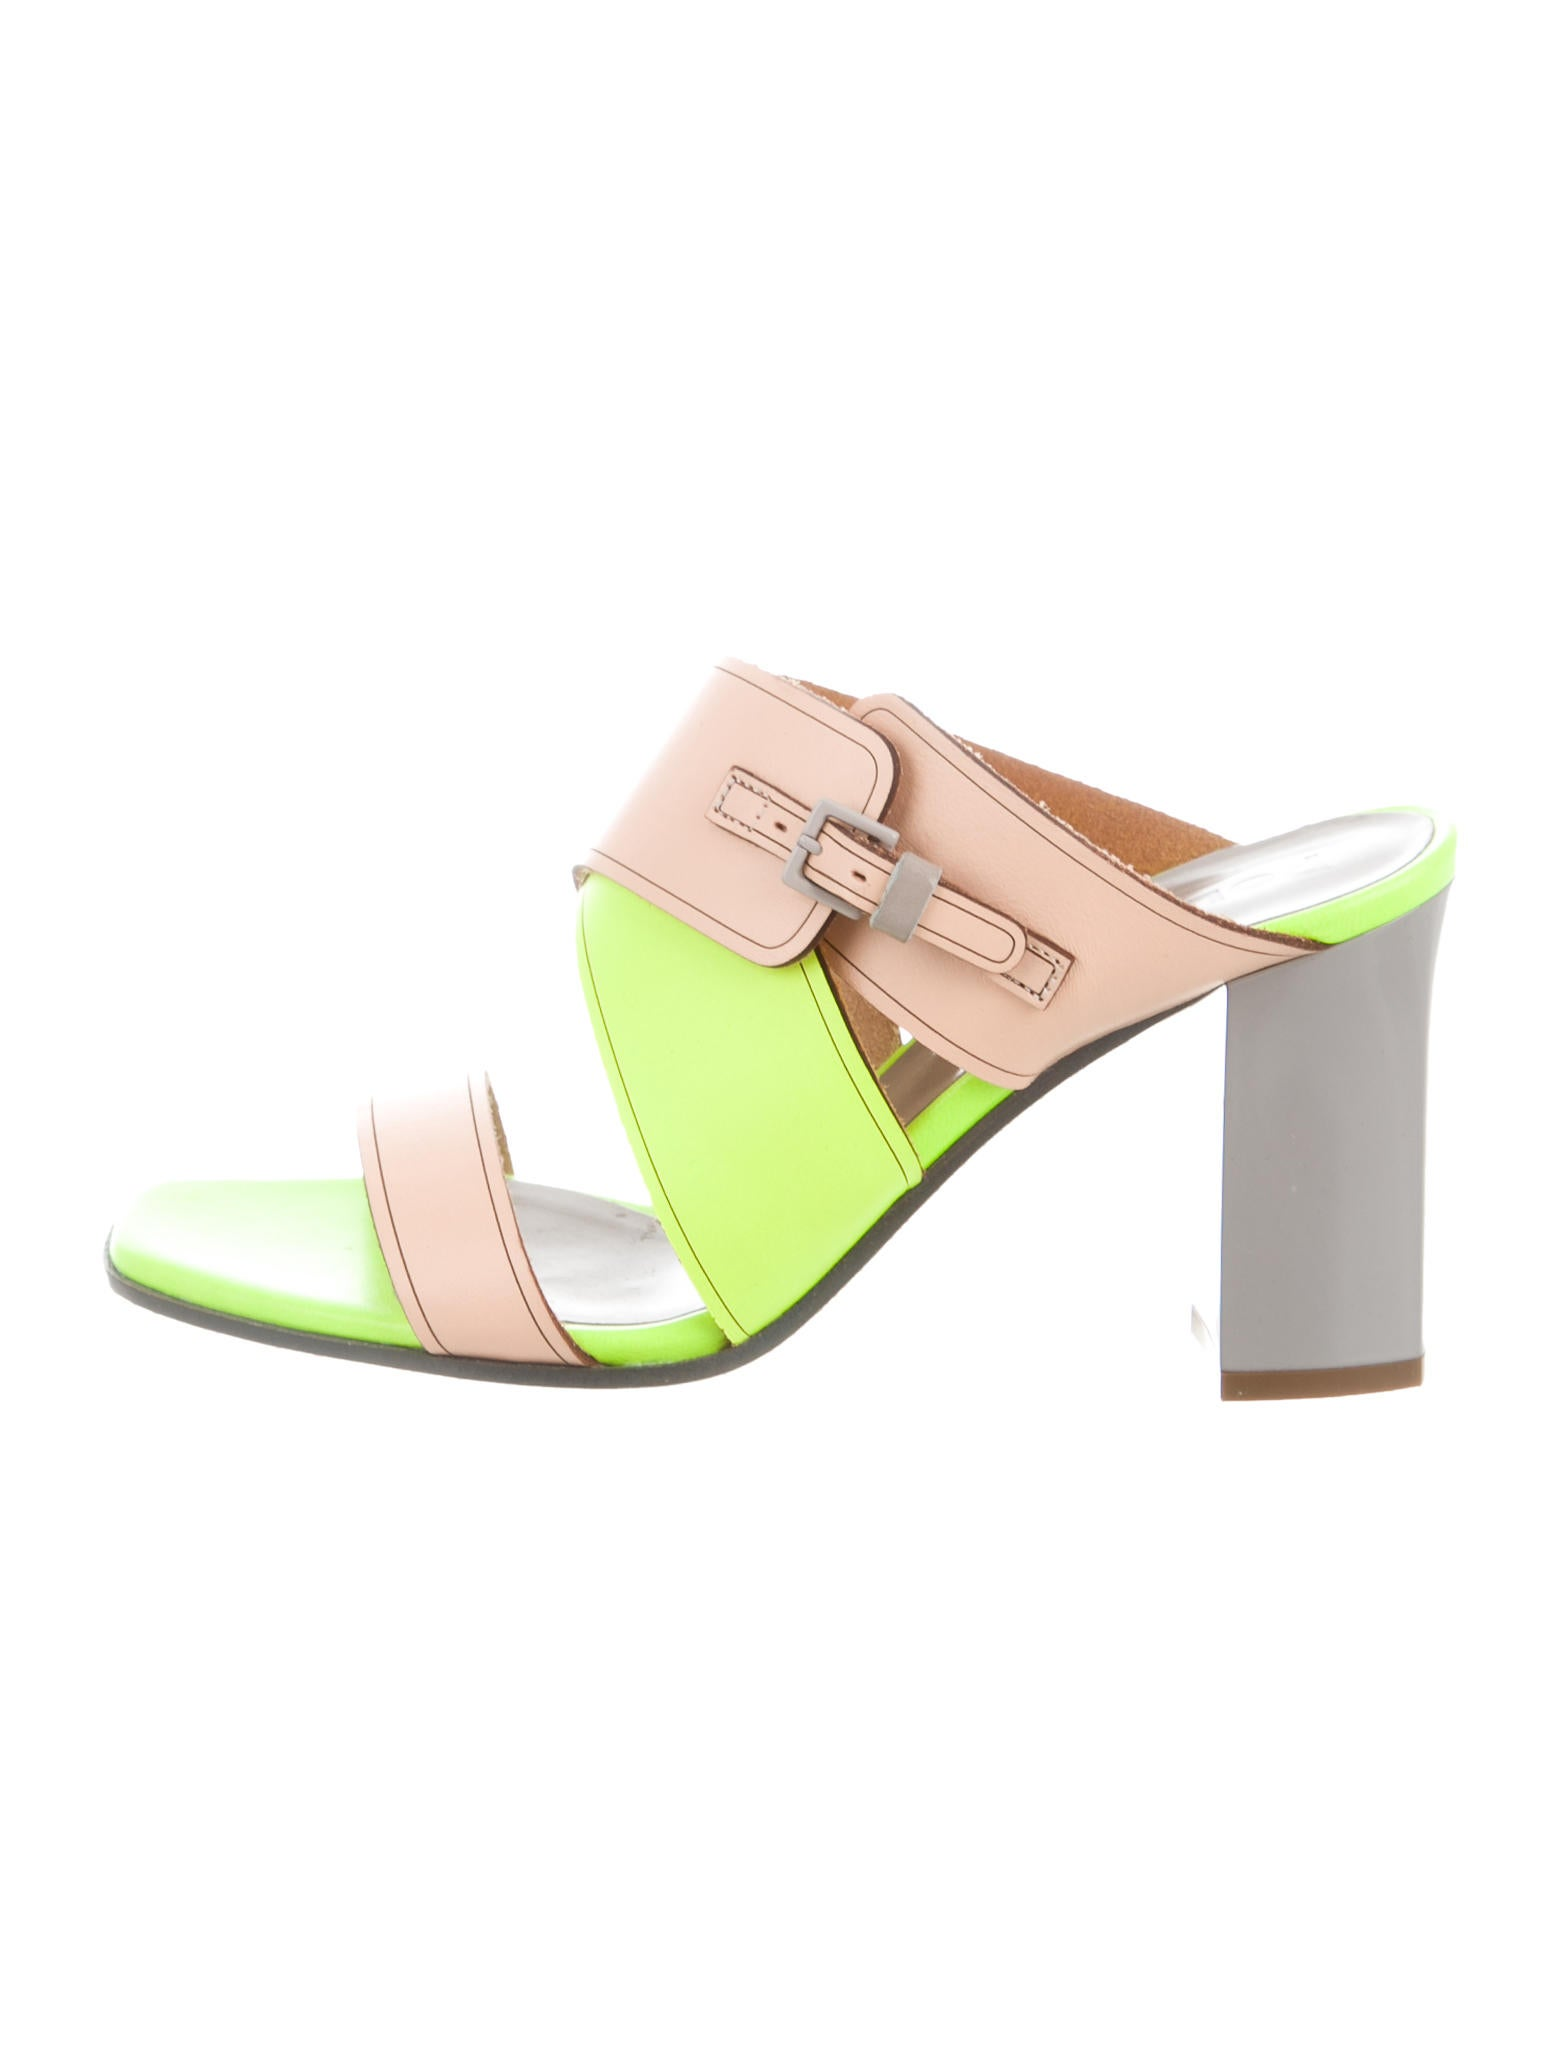 Pollini Crisscross Slide Sandals buy cheap 100% authentic buy cheap pay with paypal sale online shopping FzzA9XD651